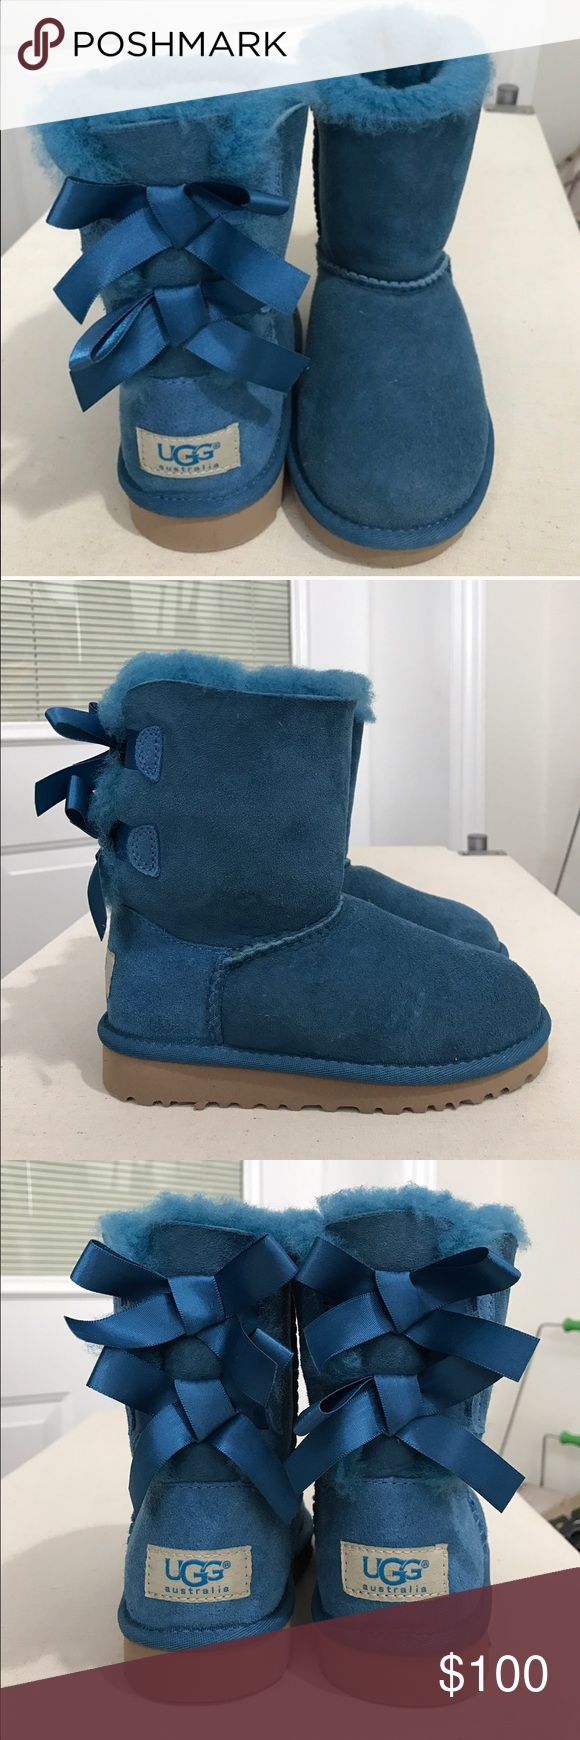 Children's UGG Bailey boots with bows These super cute teal Ugg boots have never been worn! So warm and fuzzy and perfect for any little fashionista!!!! Comes from a home with dogs so may have tiny hairs that traveled through the air.  Does not come with box. Firm on price. Thank you :) UGG Shoes Boots